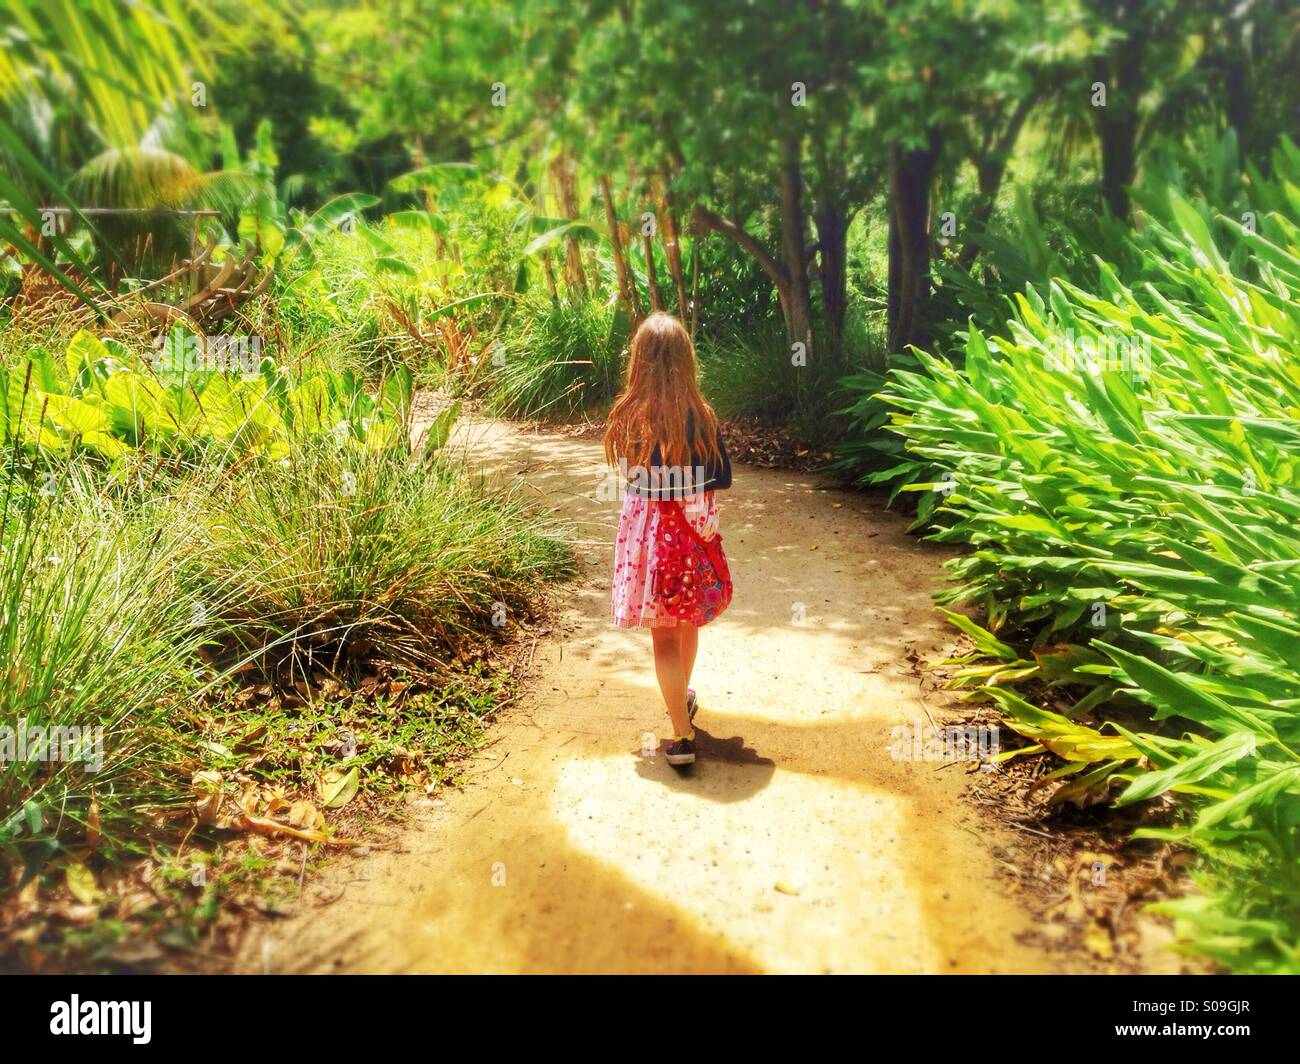 A little girl walking on a jungle path. - Stock Image